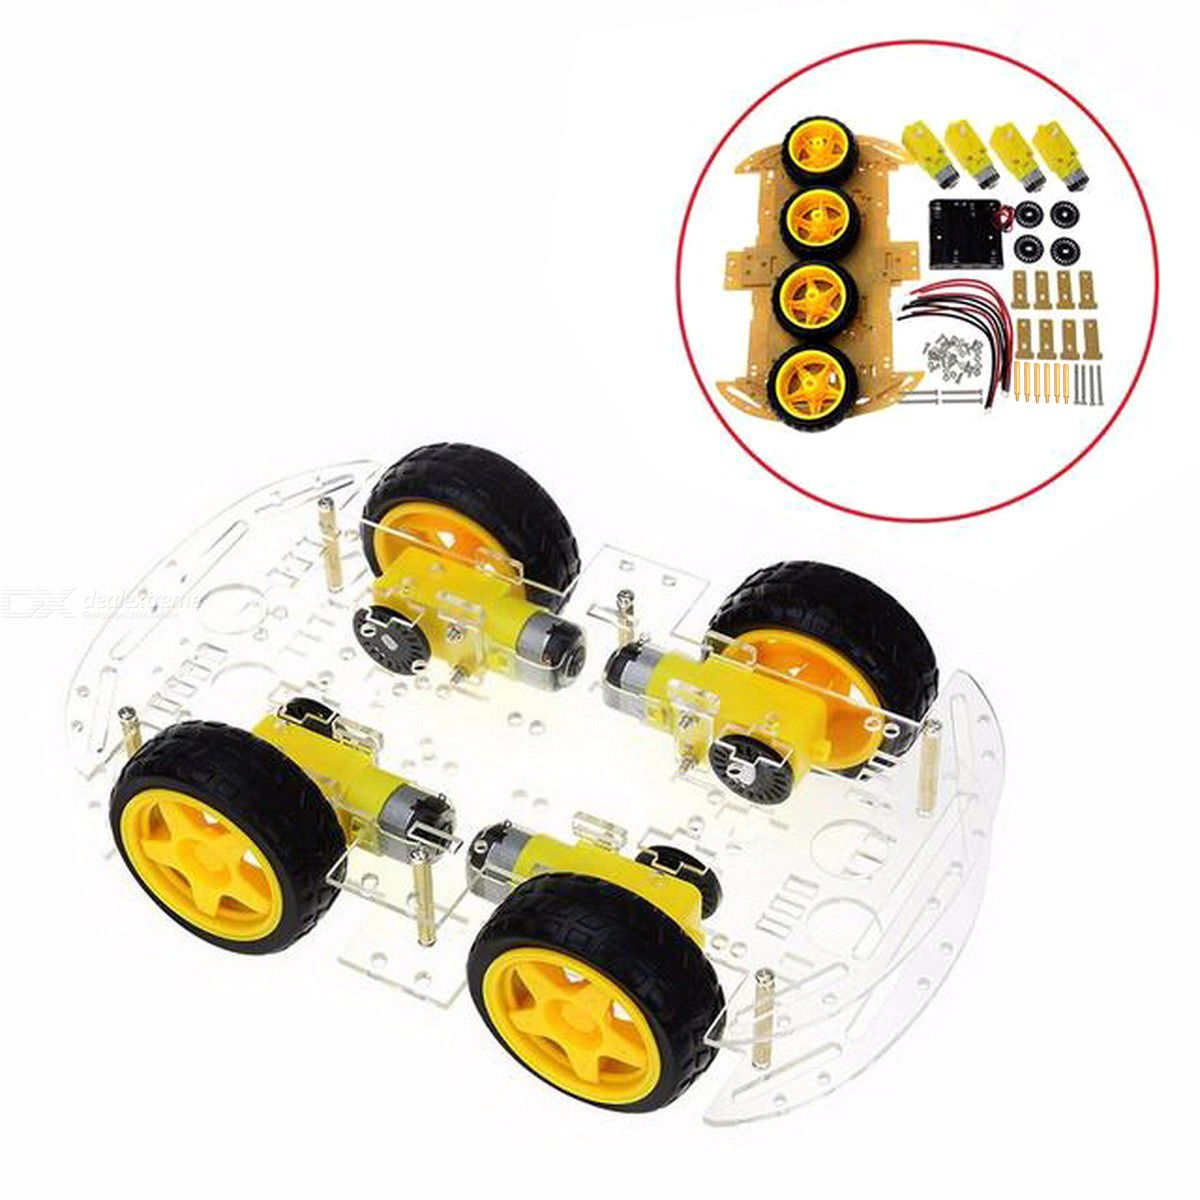 Smart Car Kit, 4WD Smart Robot Car Chassis Kits with Speed Encoder and Battery Box for Arduino DIY Kit colorful